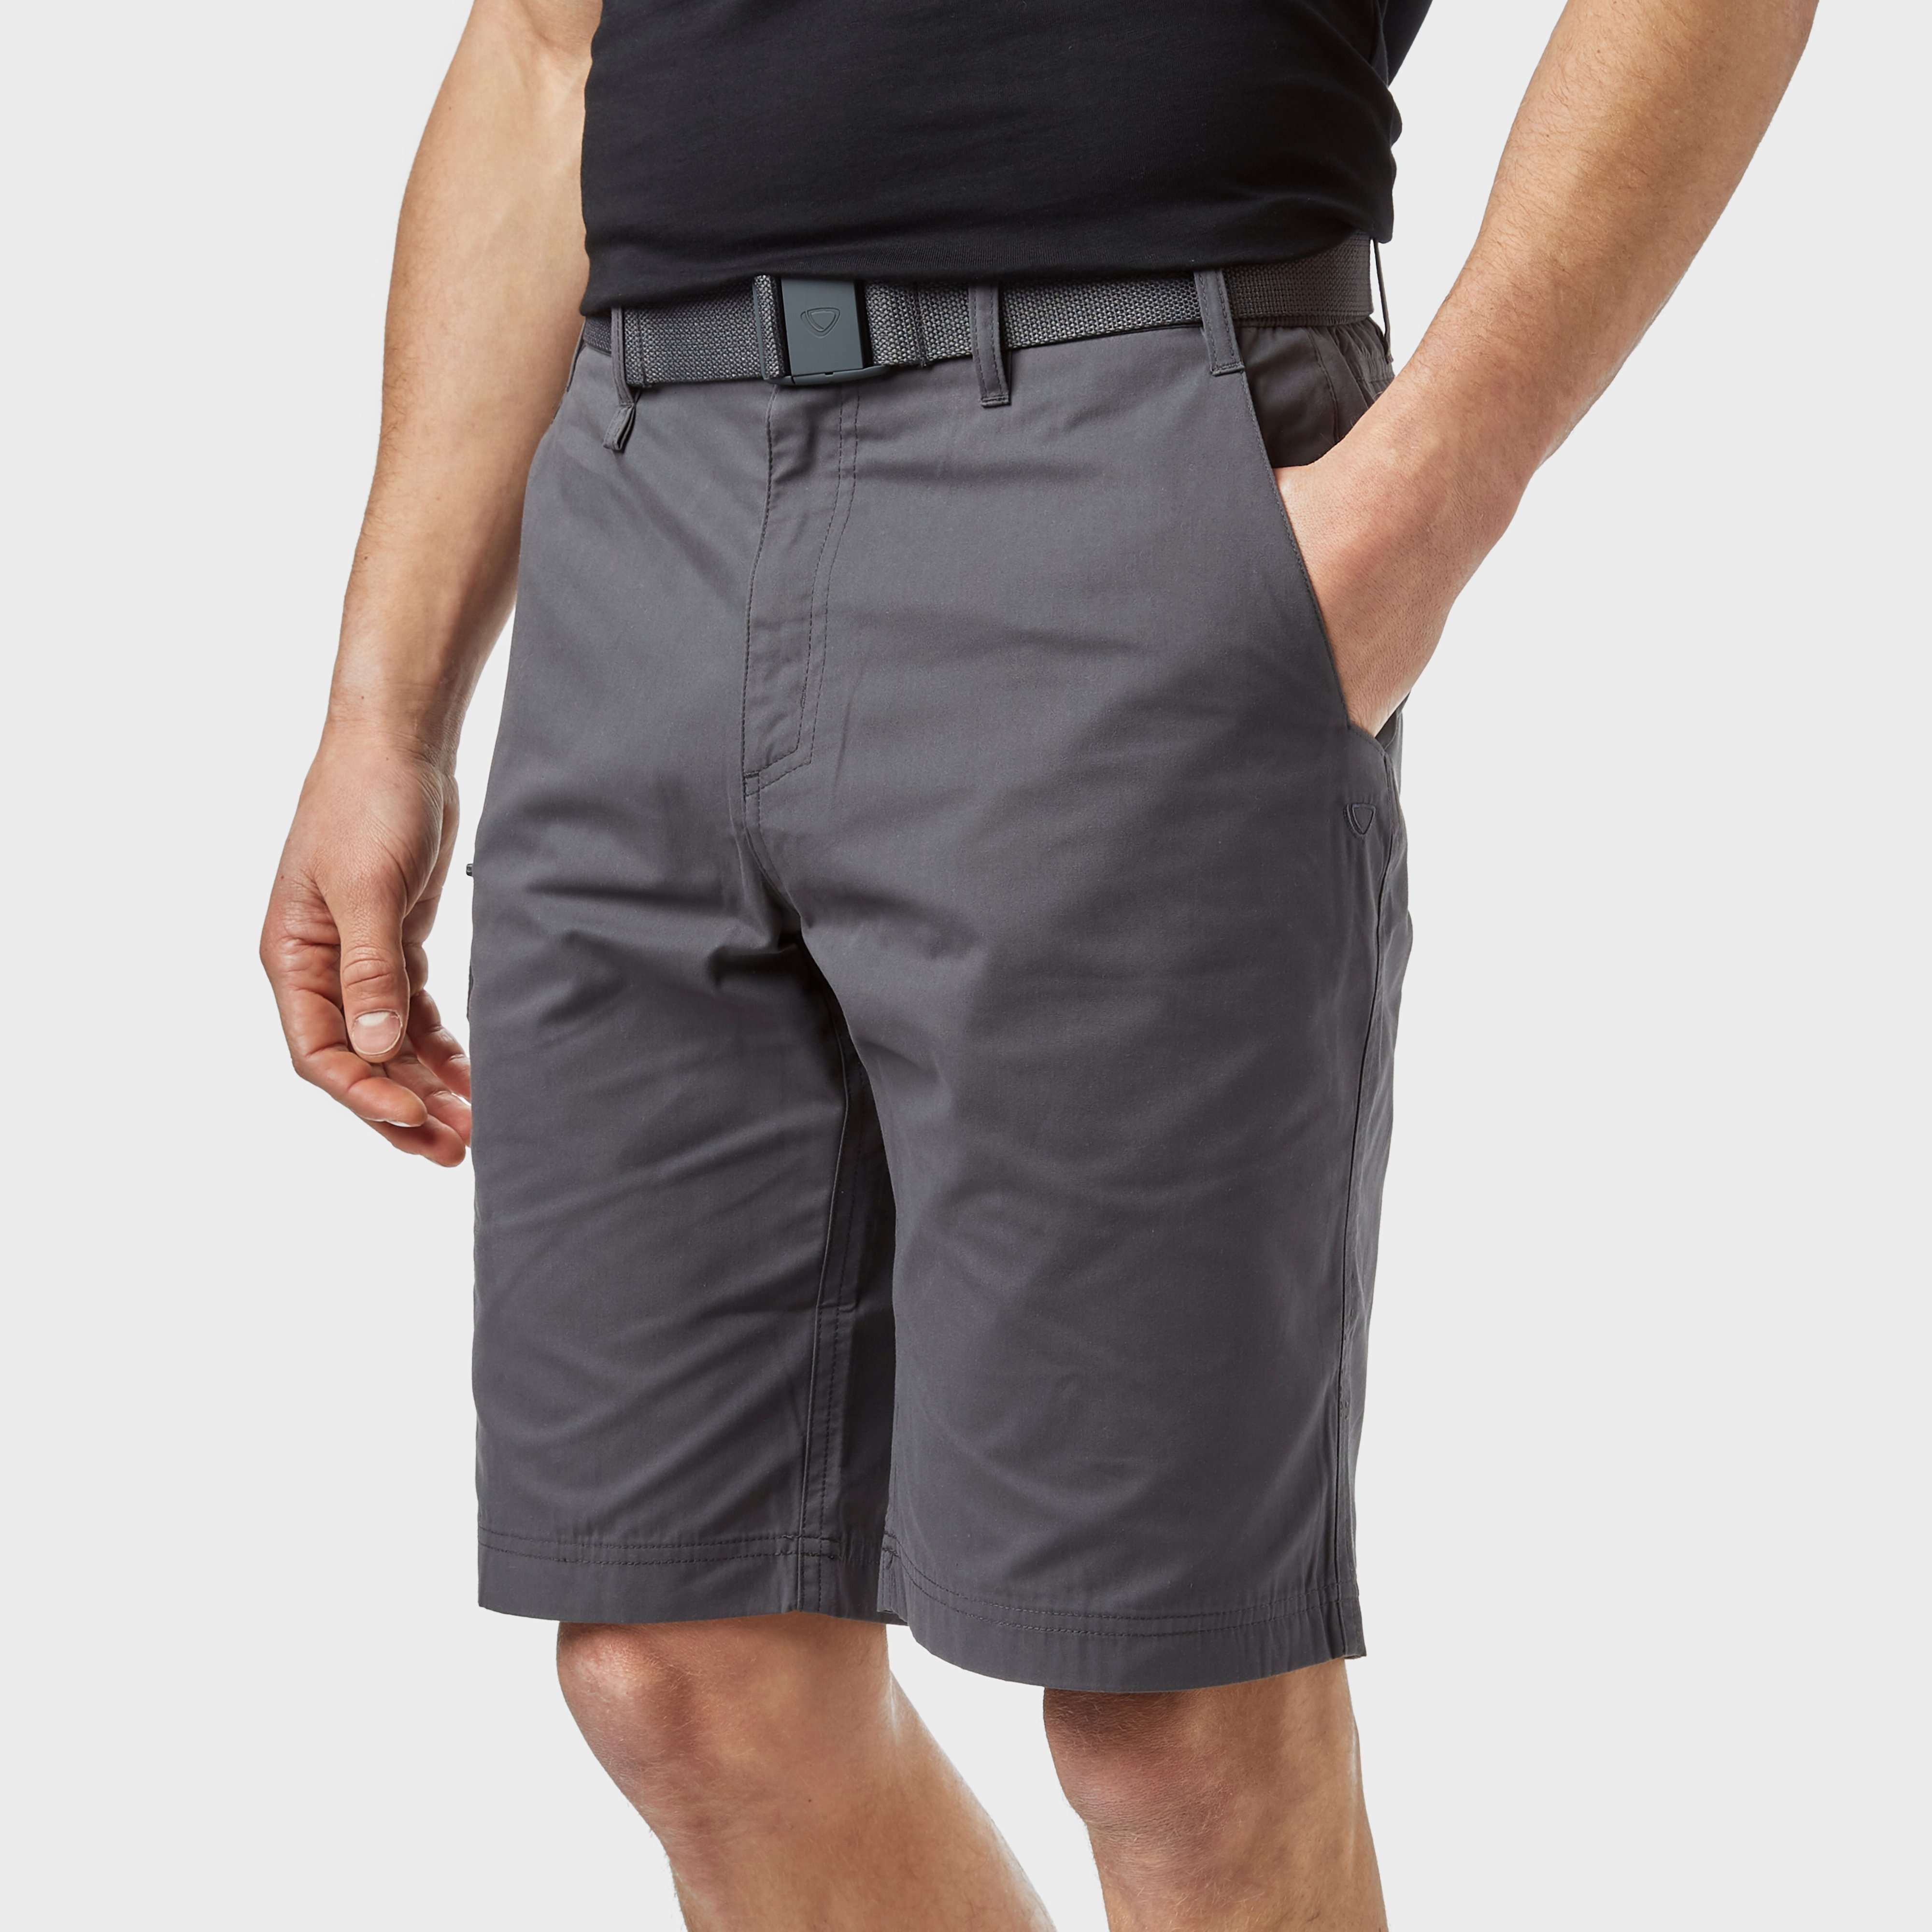 BRASHER Men's Shorts